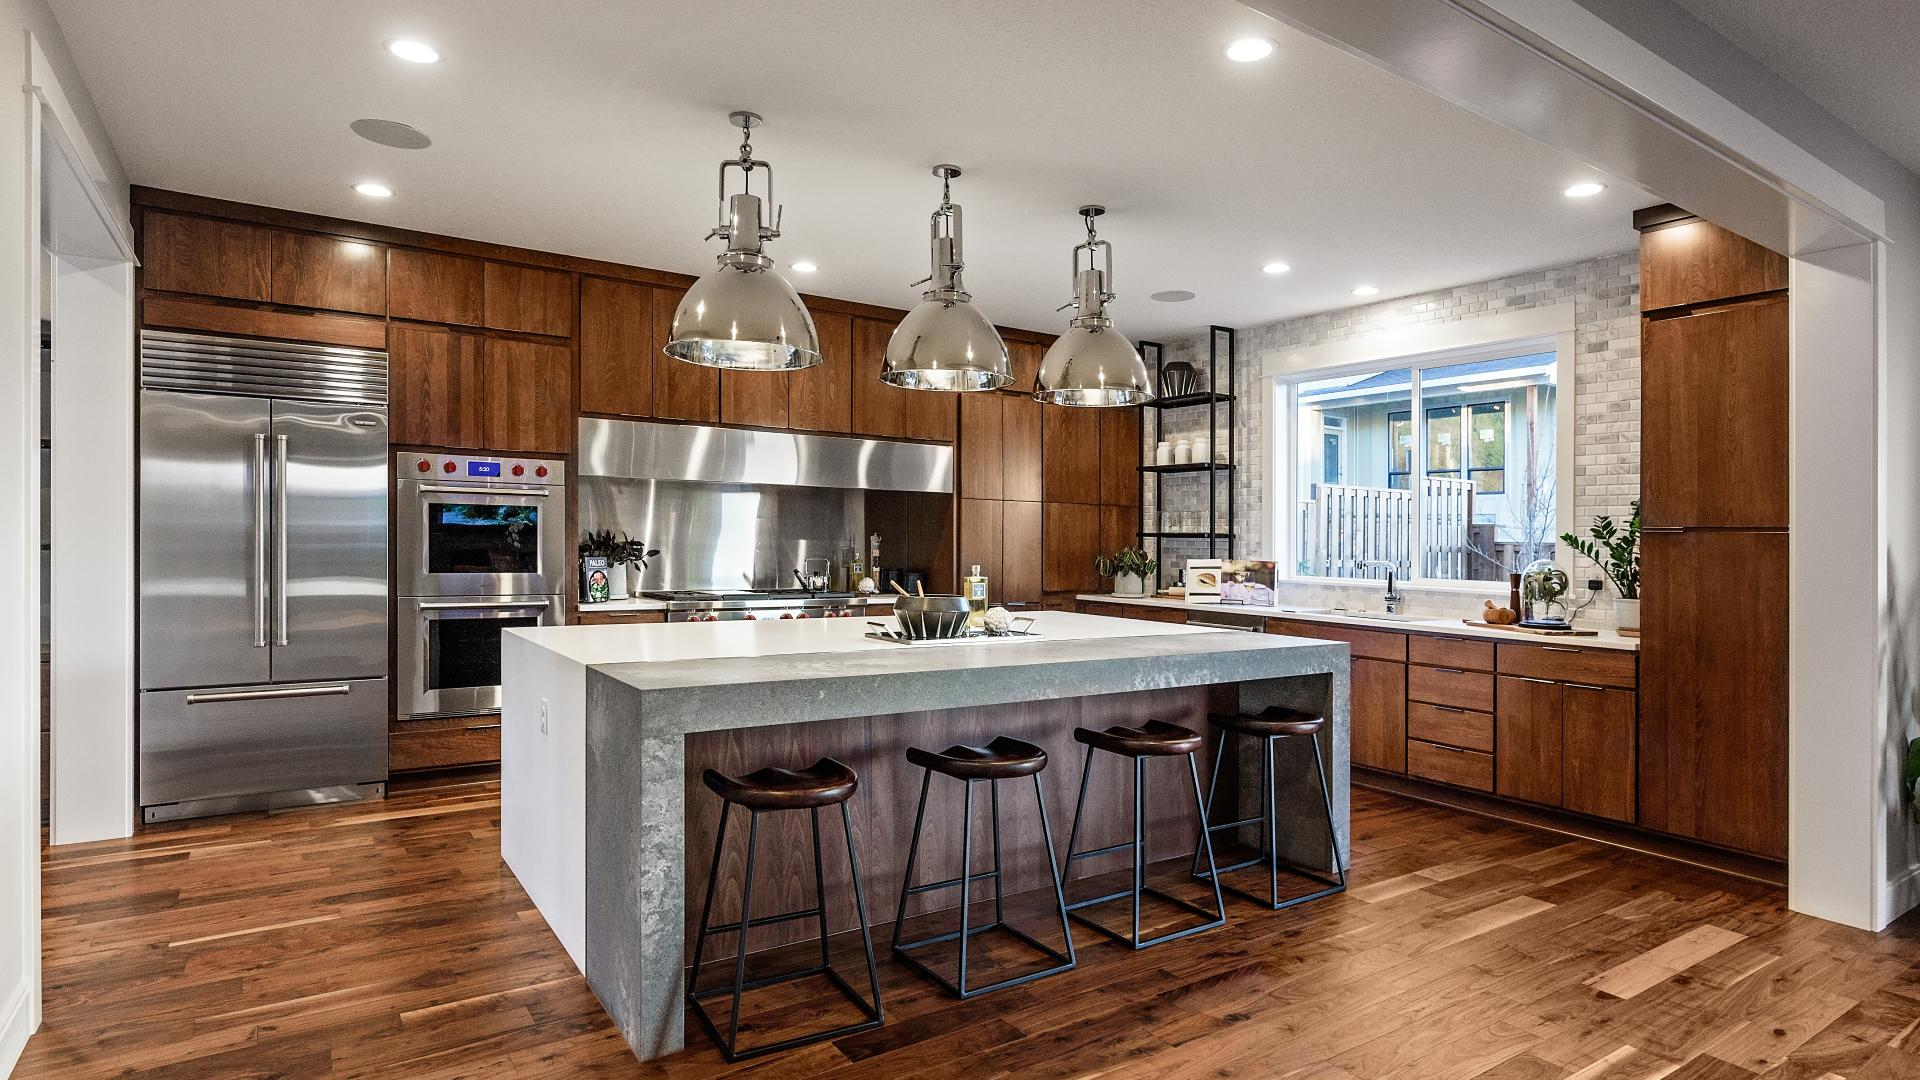 Chef's kitchen in the Eugene model home